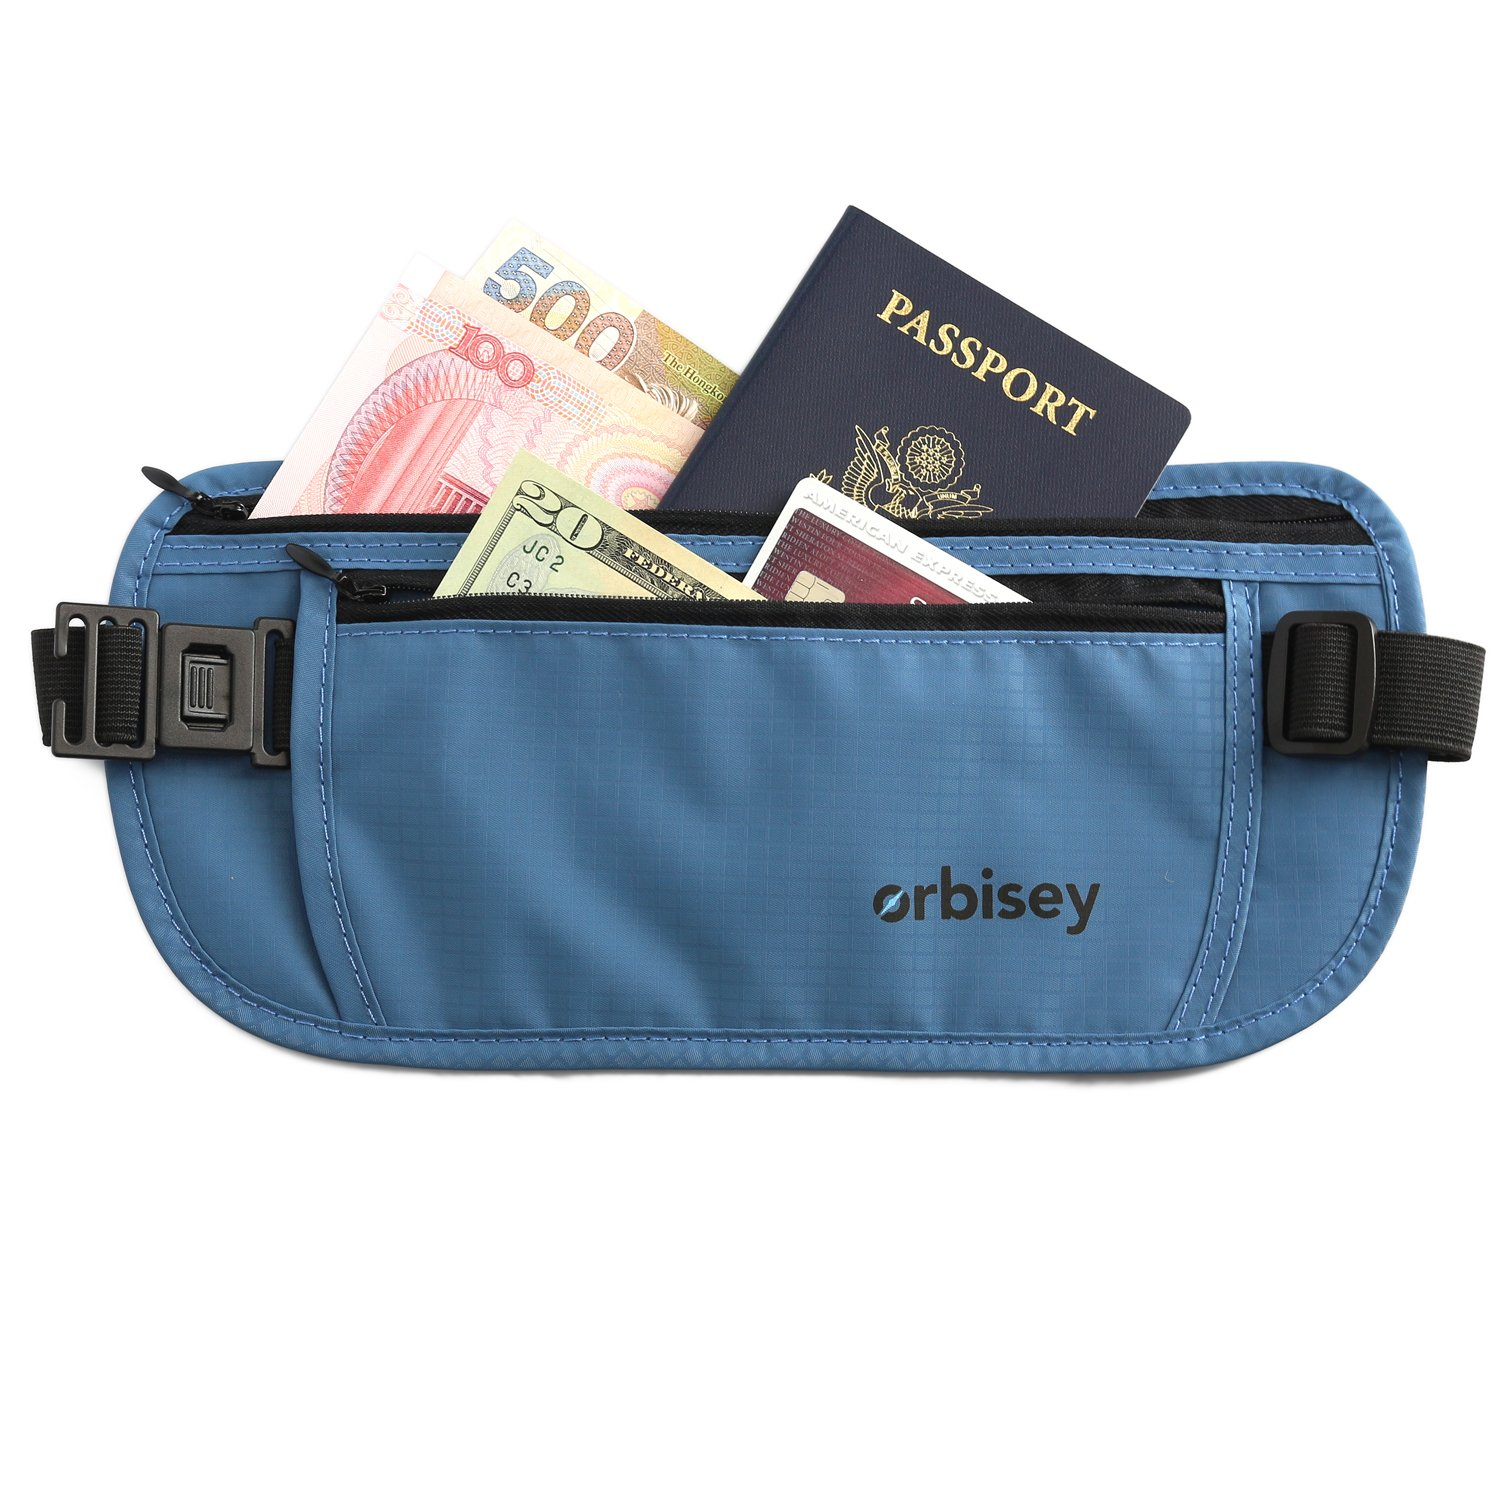 Orbisey Travel Adventure Hidden Waist Money Belt Water Resistant For Passport, Credit Cards, Phone, Documents One Size Fits All by Orbisey